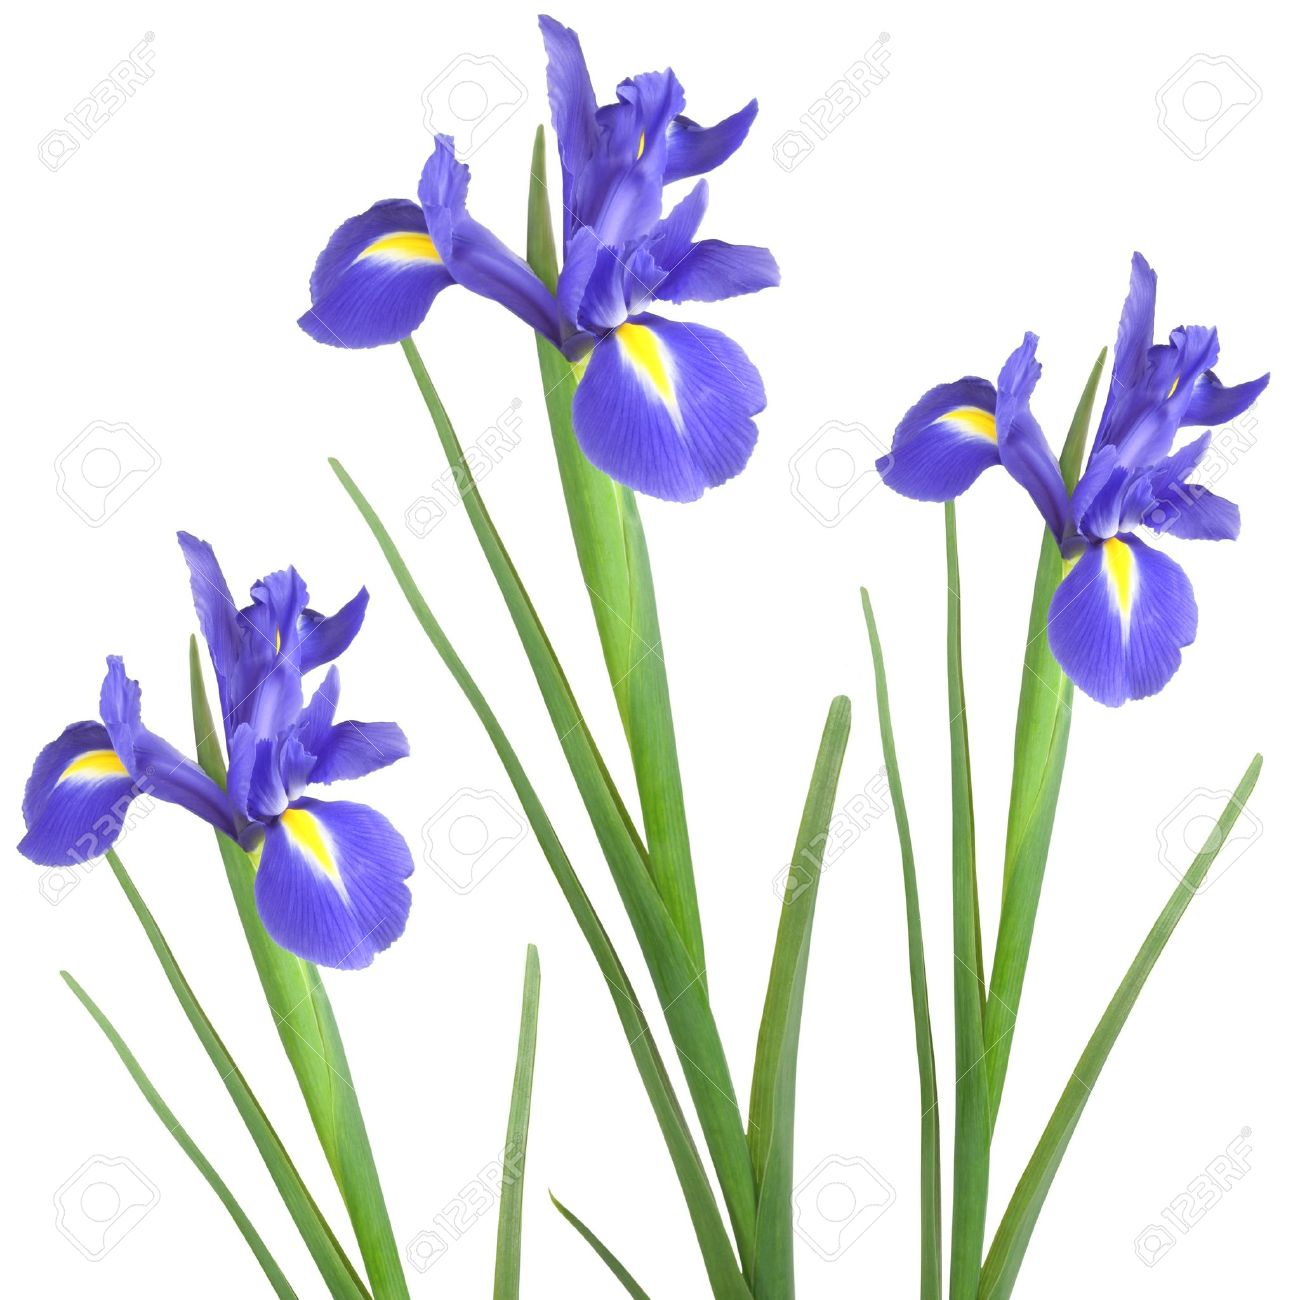 iris flower images  stock pictures. royalty free iris flower, Natural flower